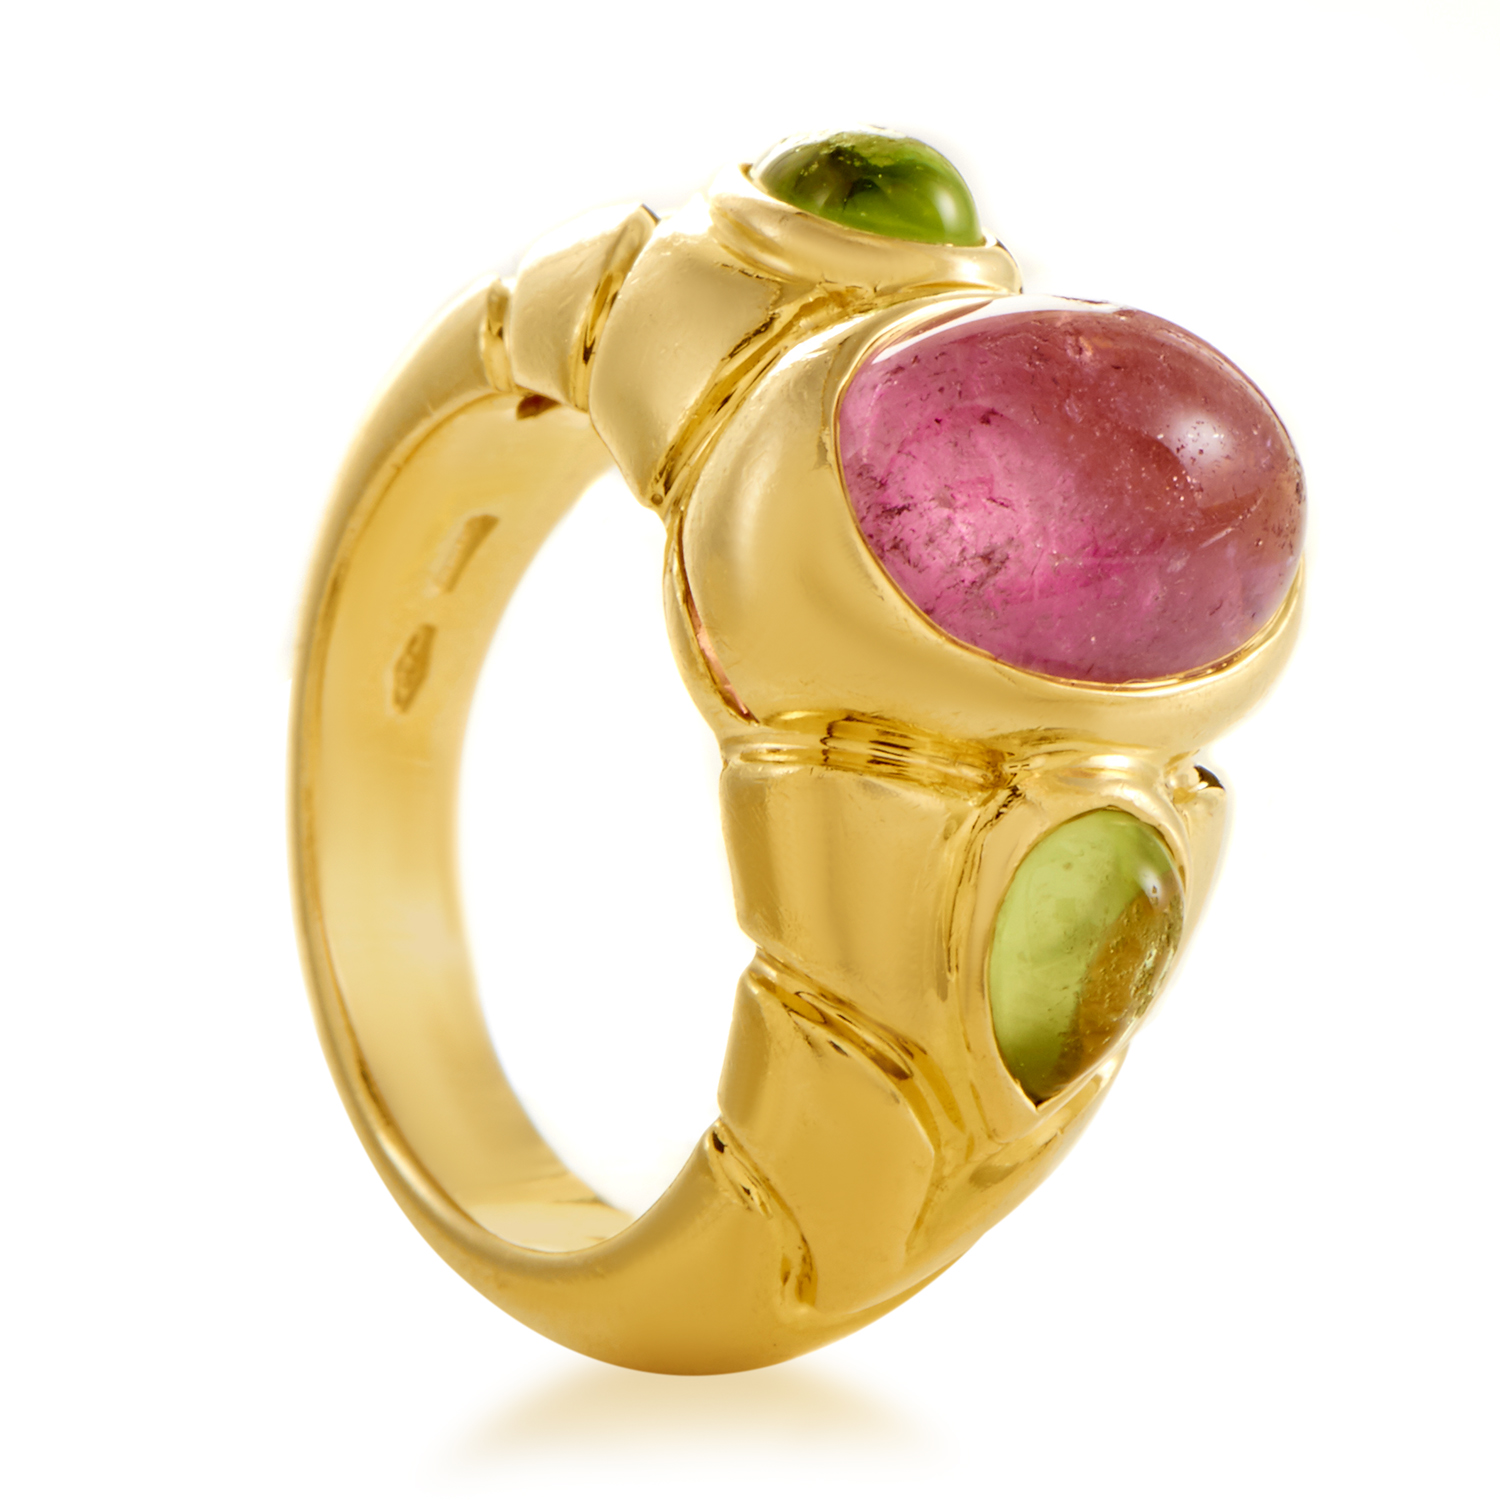 Bvlgari Women's 18K Yellow Gold Tourmaline & Peridot Ring